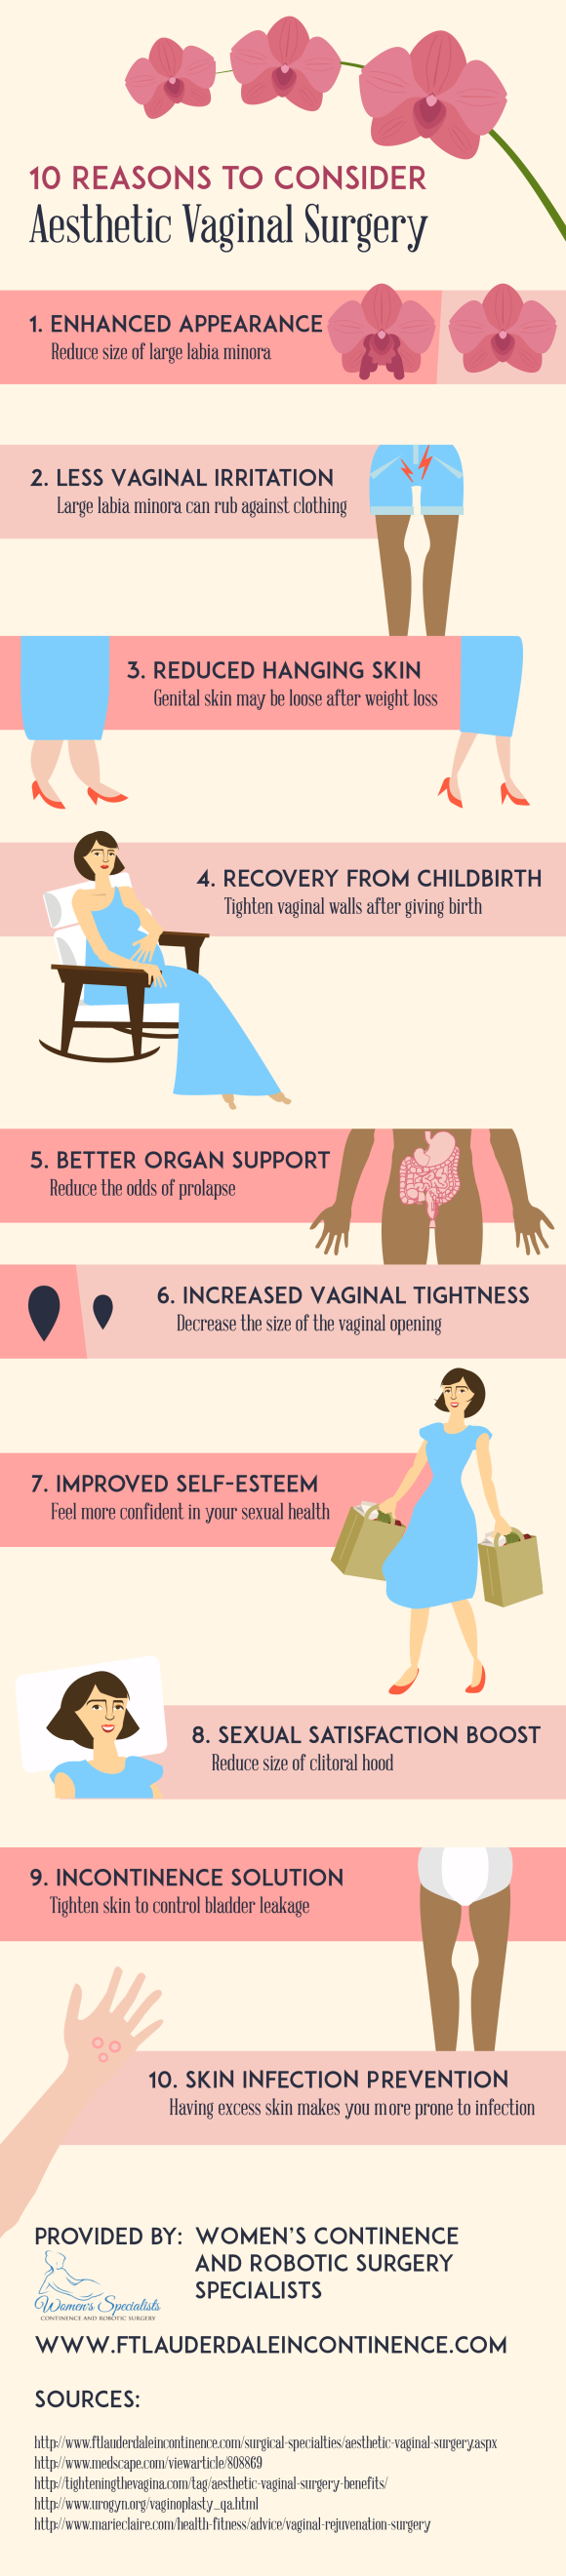 It Is Common For Genital Skin To Be Loose After Weight Loss Luckily Vaginal Surgery Can Reduce Hanging Skin Learn More About The Procedure By Clicking